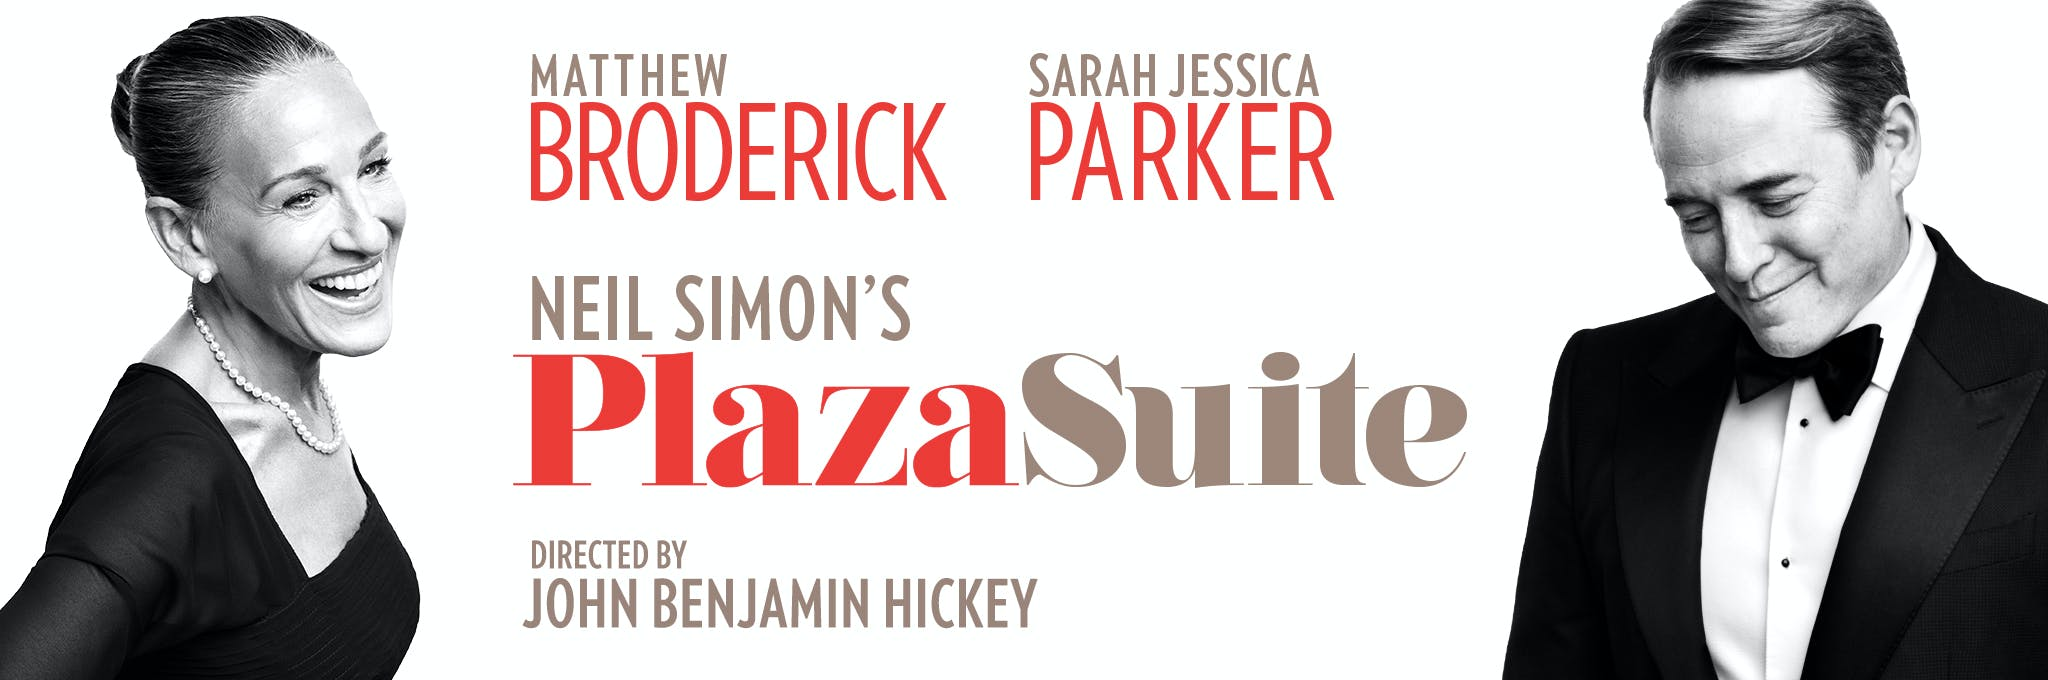 Plaza Suite on Broadway Logo